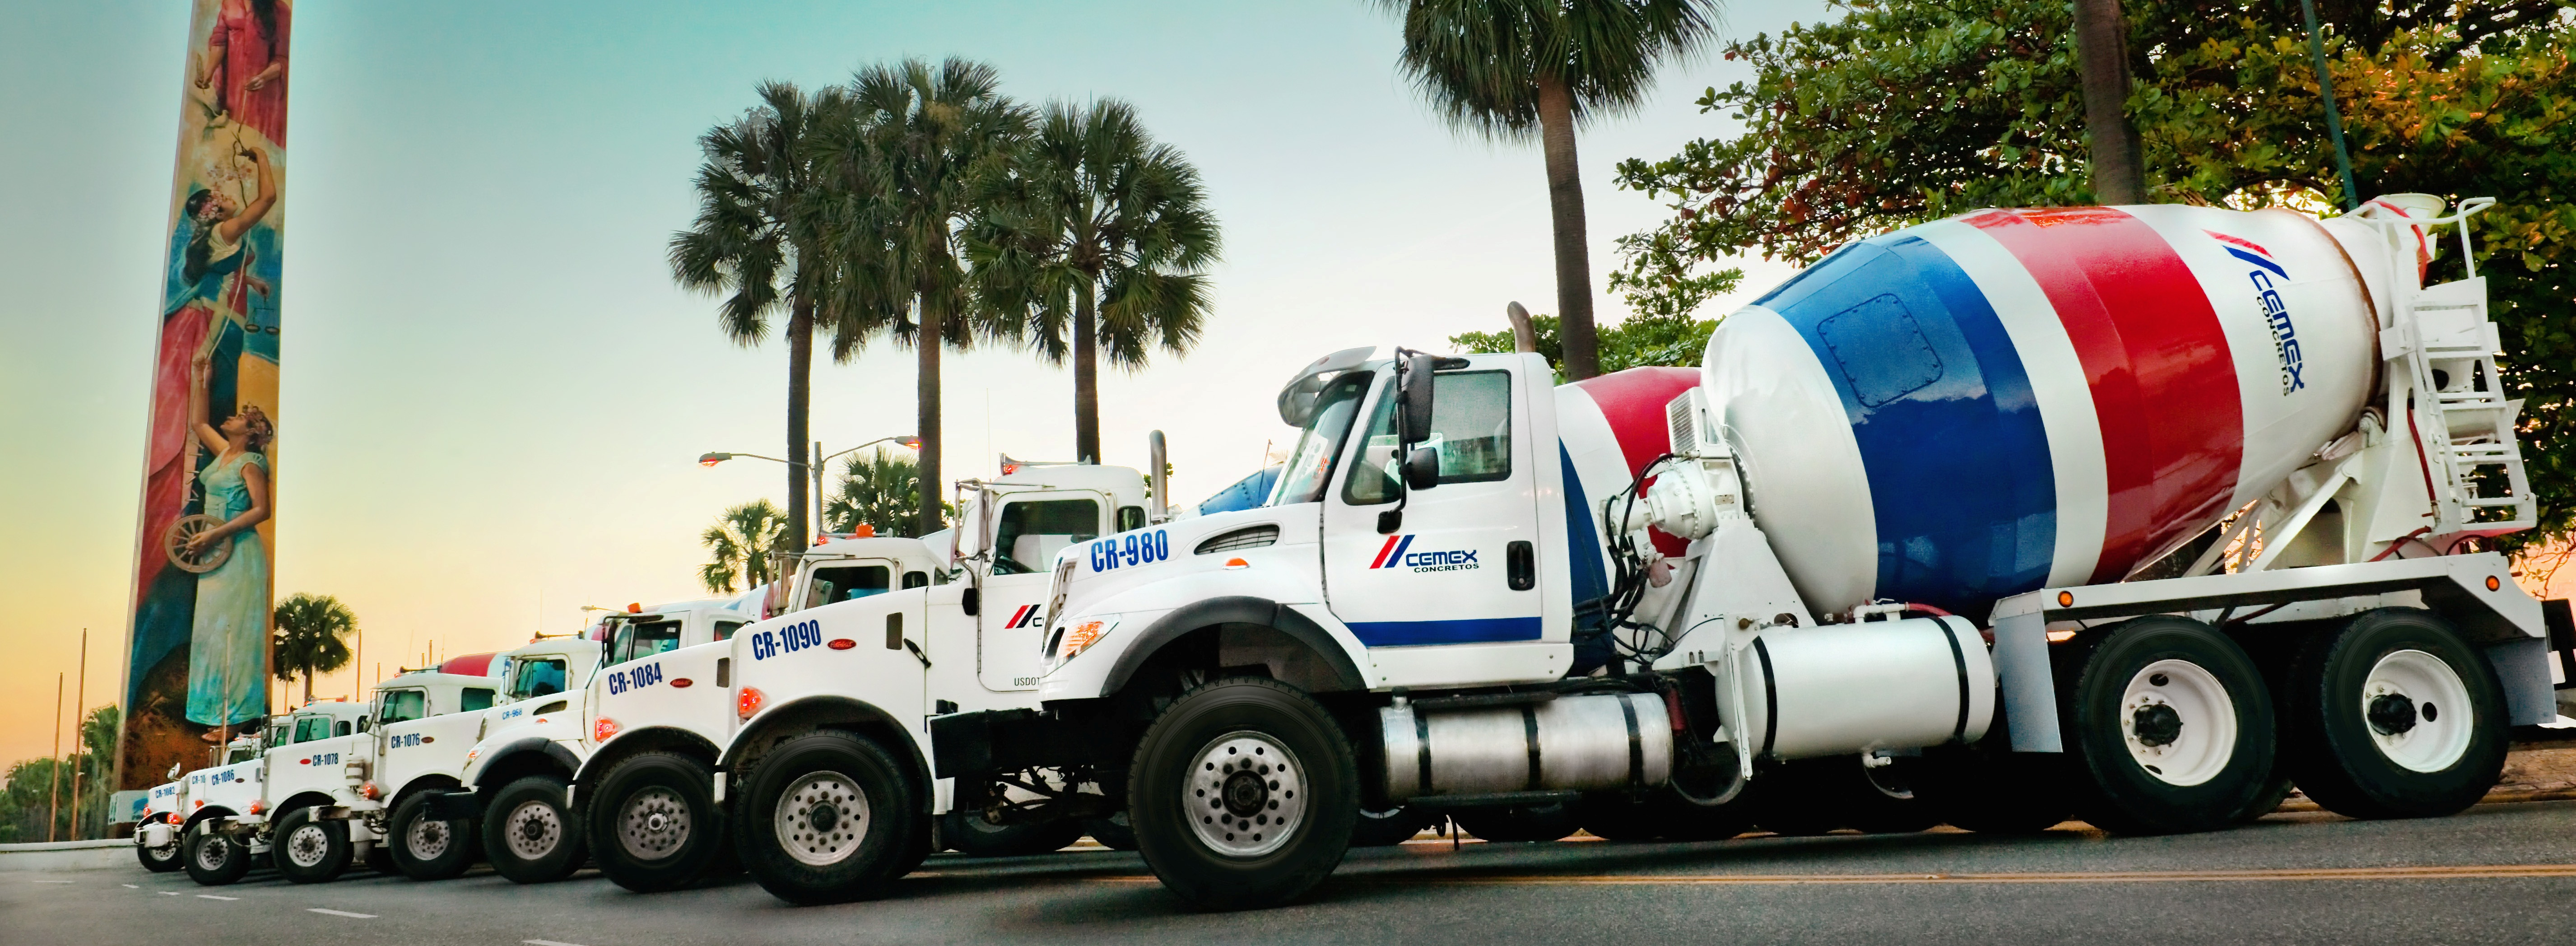 cemex Cemex 303,918 likes 2,285 talking about this a global leader present in more than 50 countries & trading with over 100 nations like our page for.